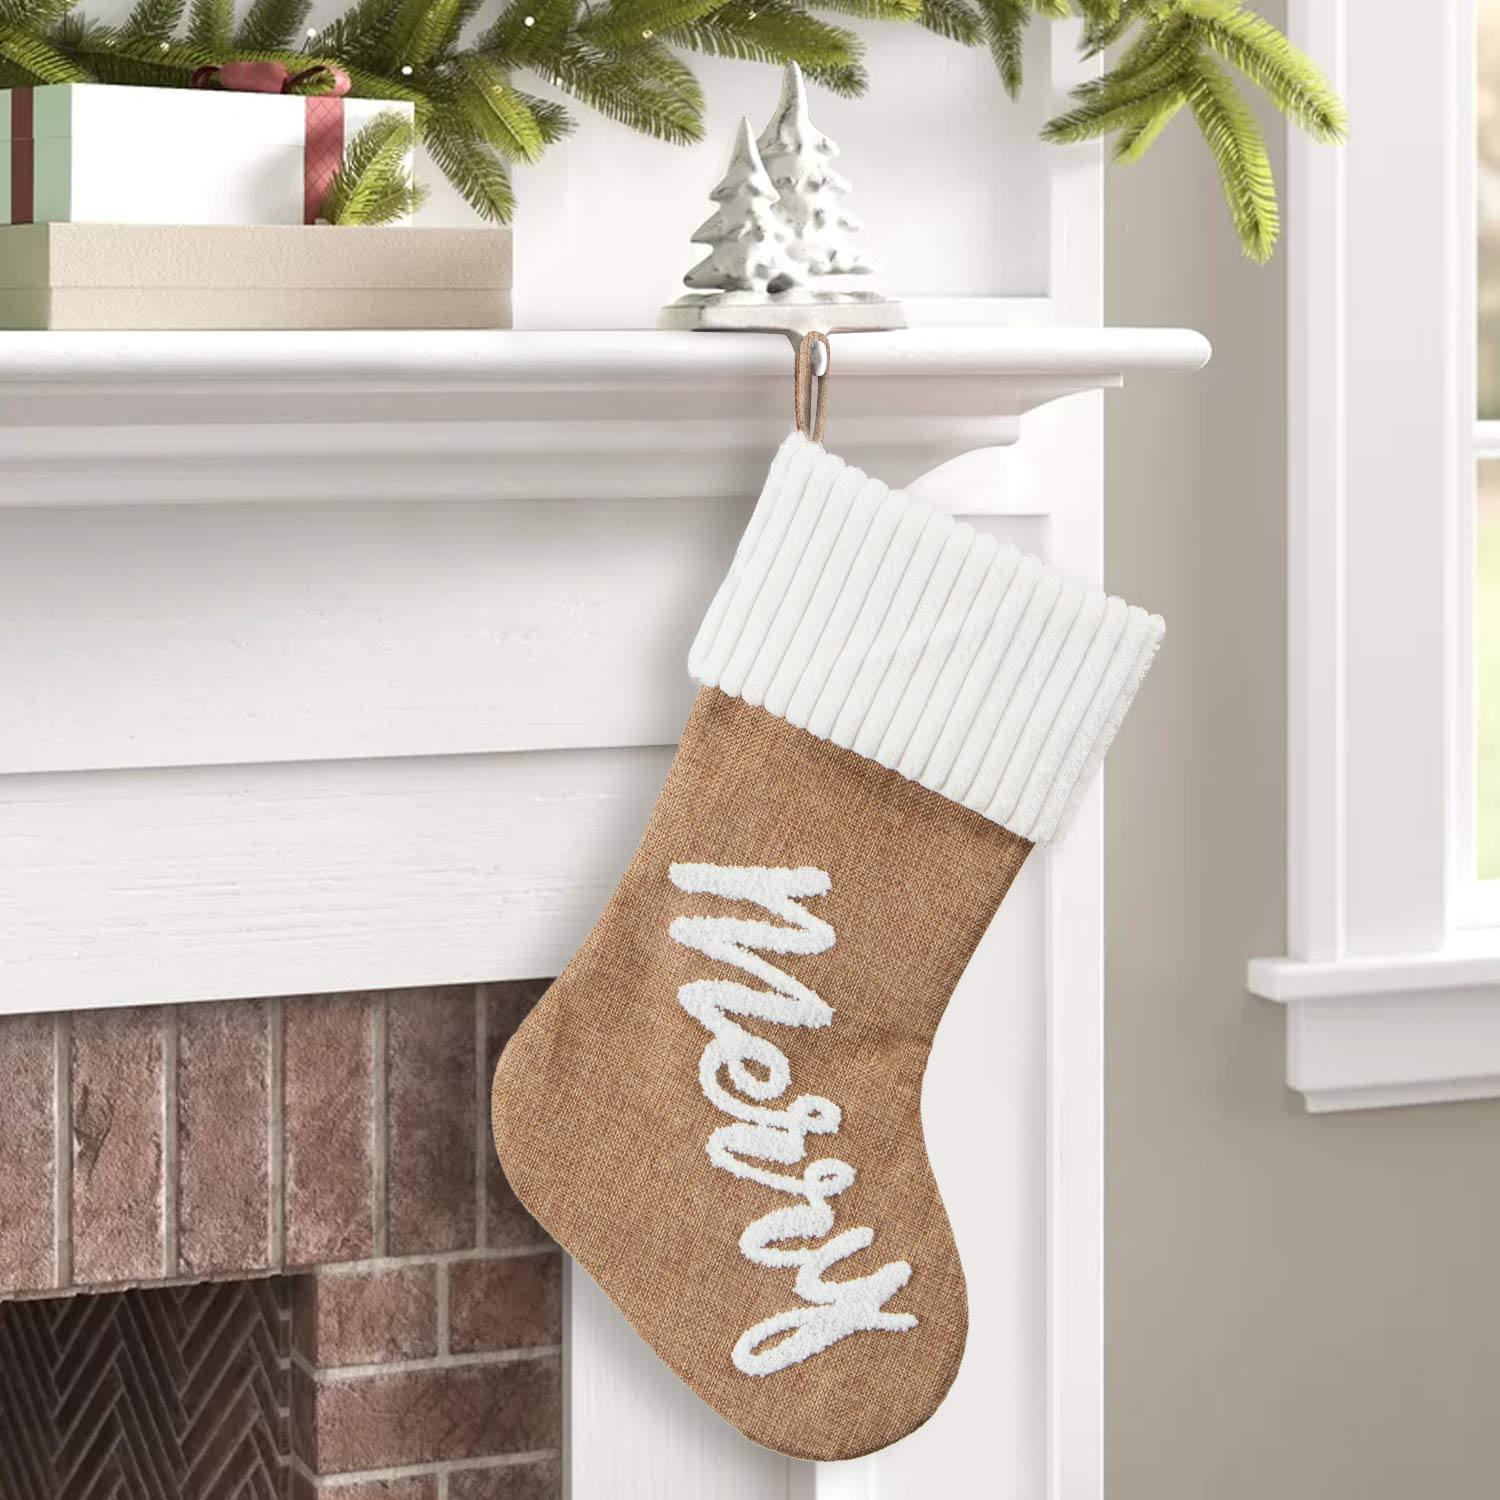 GMOEGEFT 18 Inches Christmas Stocking Set of 3 Burlap with Snowflake Applique Farmhouse Style Handicraft Xmas Tree Home Decoration Ornaments